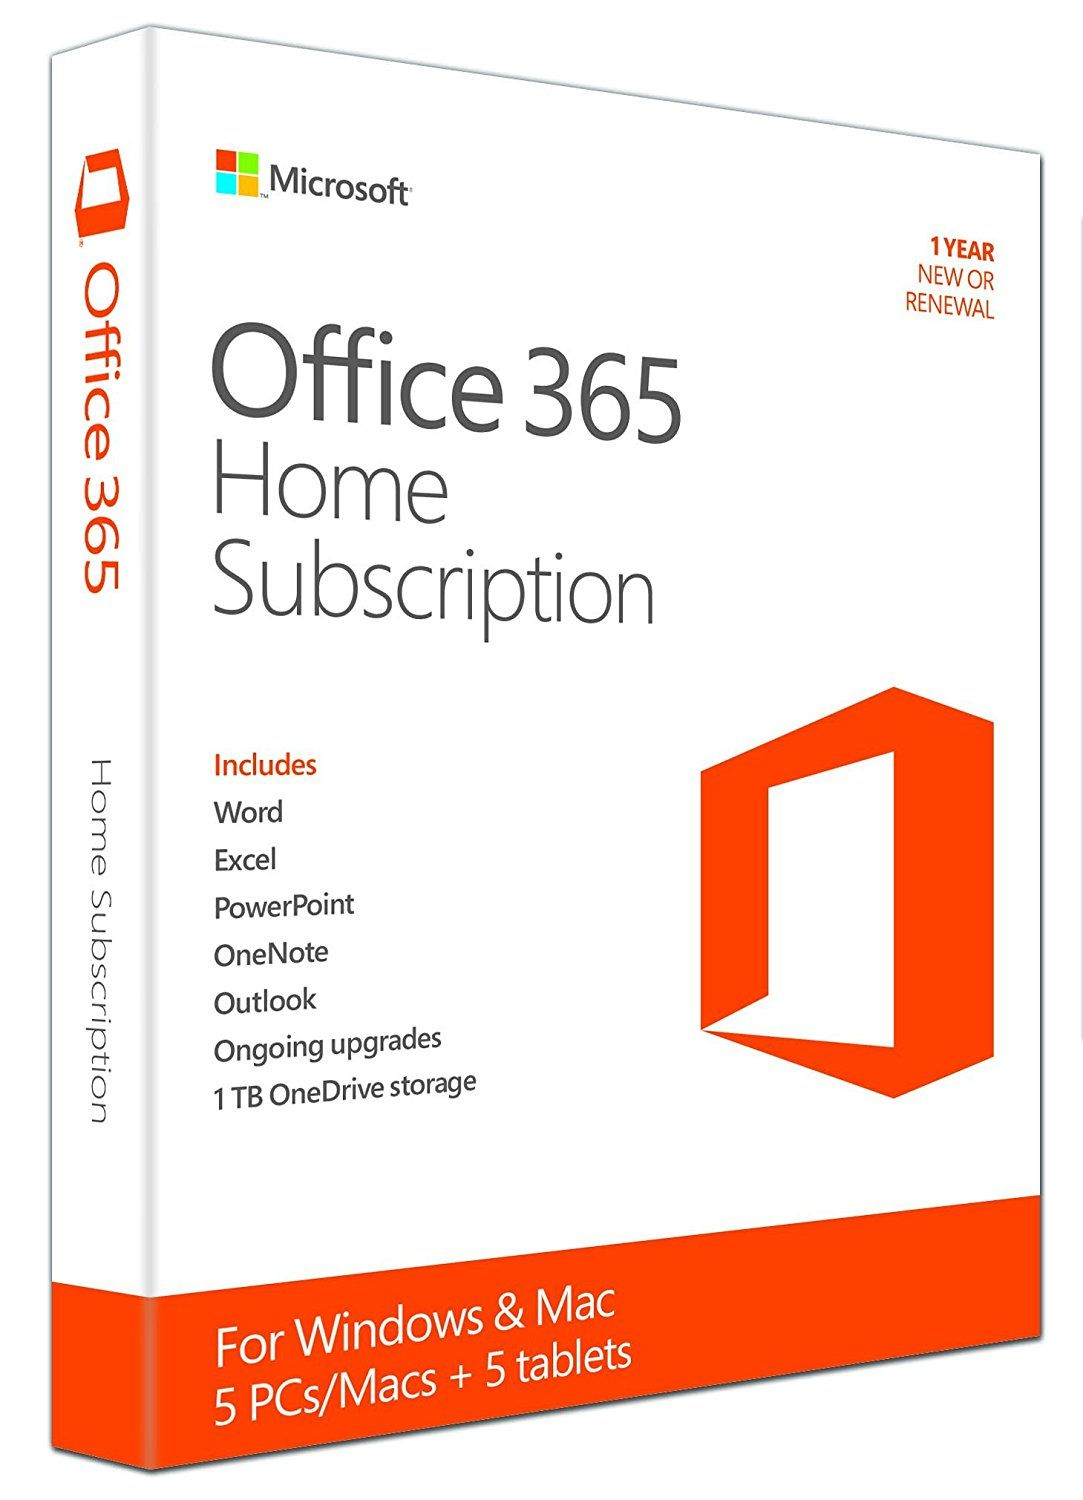 You Can Renew Your Office Setup 365 Subscription At Office Com Renew Check How To Renew Office Subscription Office 365 Personal Office 365 Microsoft Office